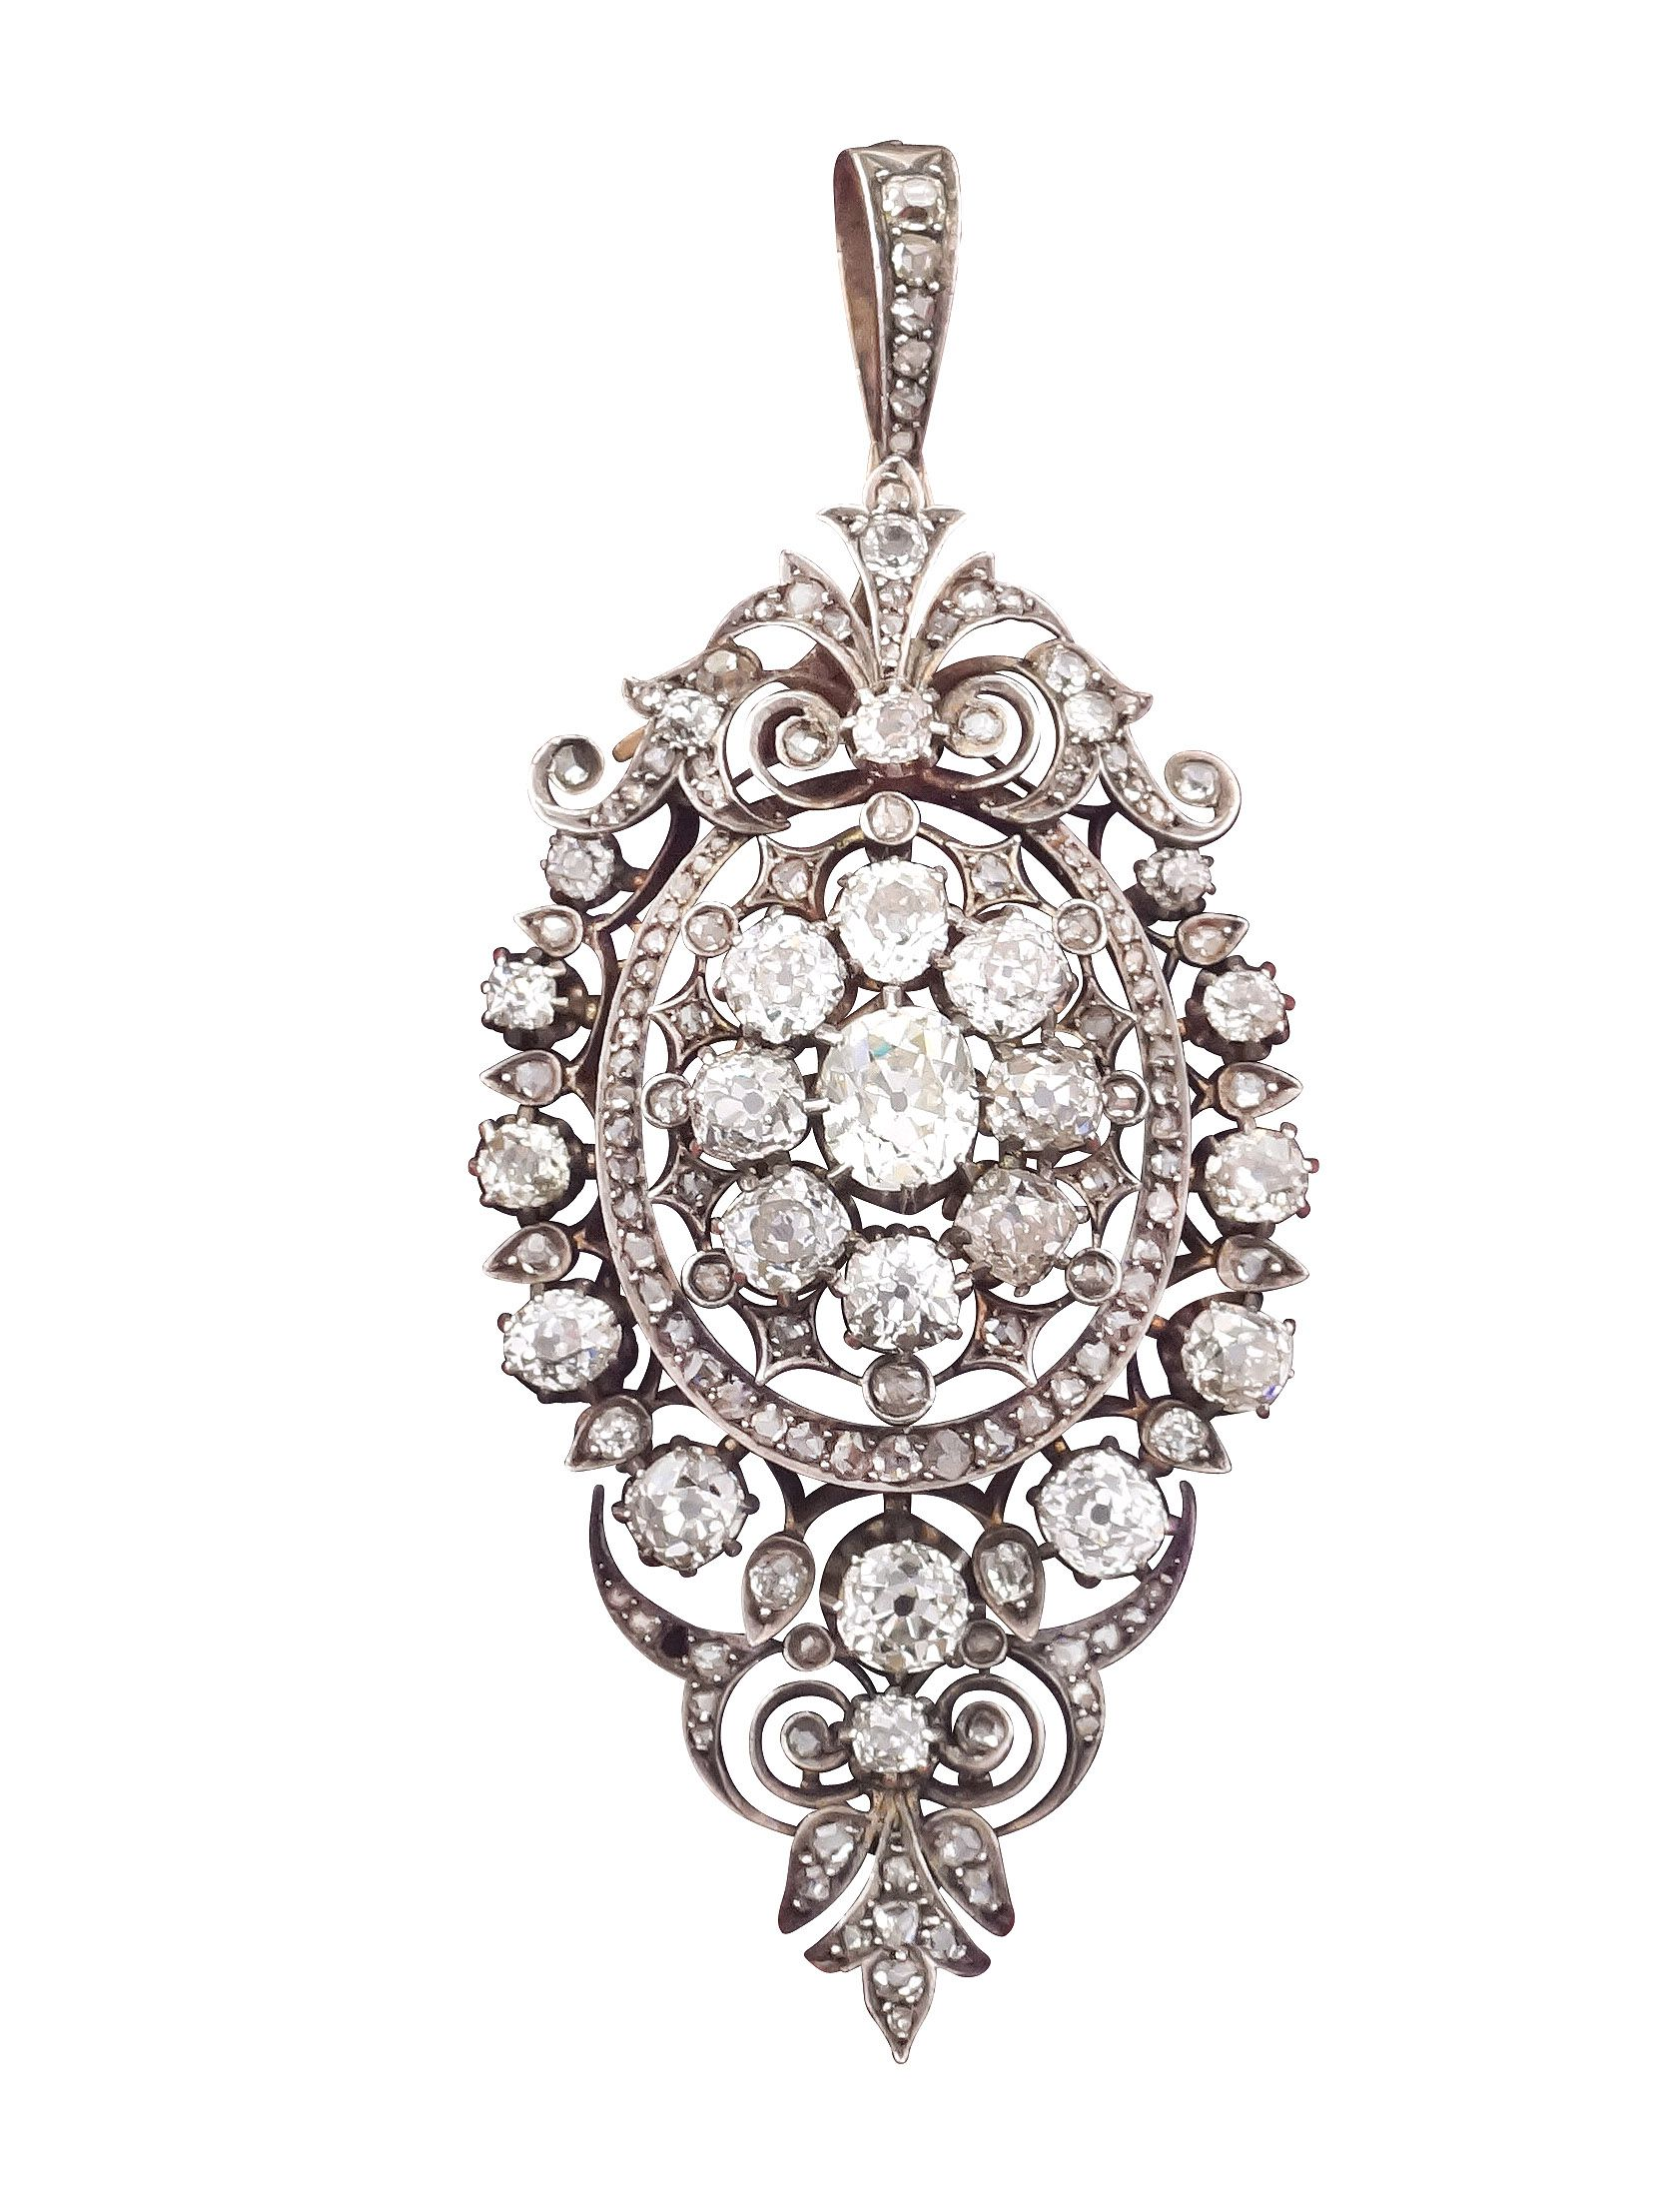 Lot 192 A silver, gold and diamond brooch  Early 19th century http://www.colasantiaste.com/?language=en